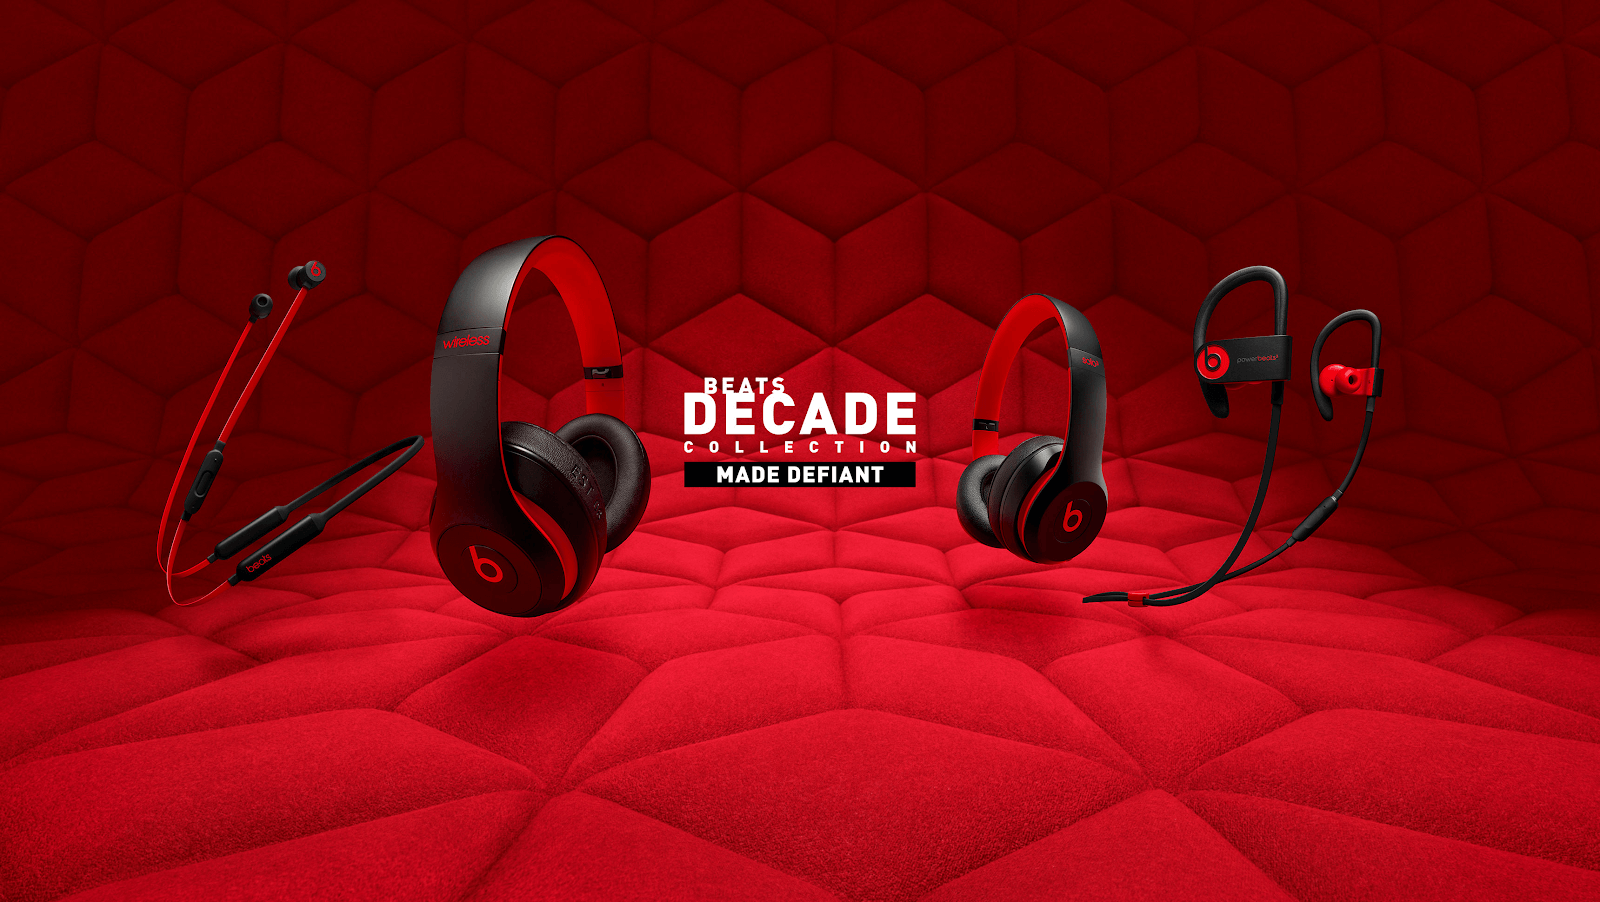 red Beats by Dre wireless headphone collection